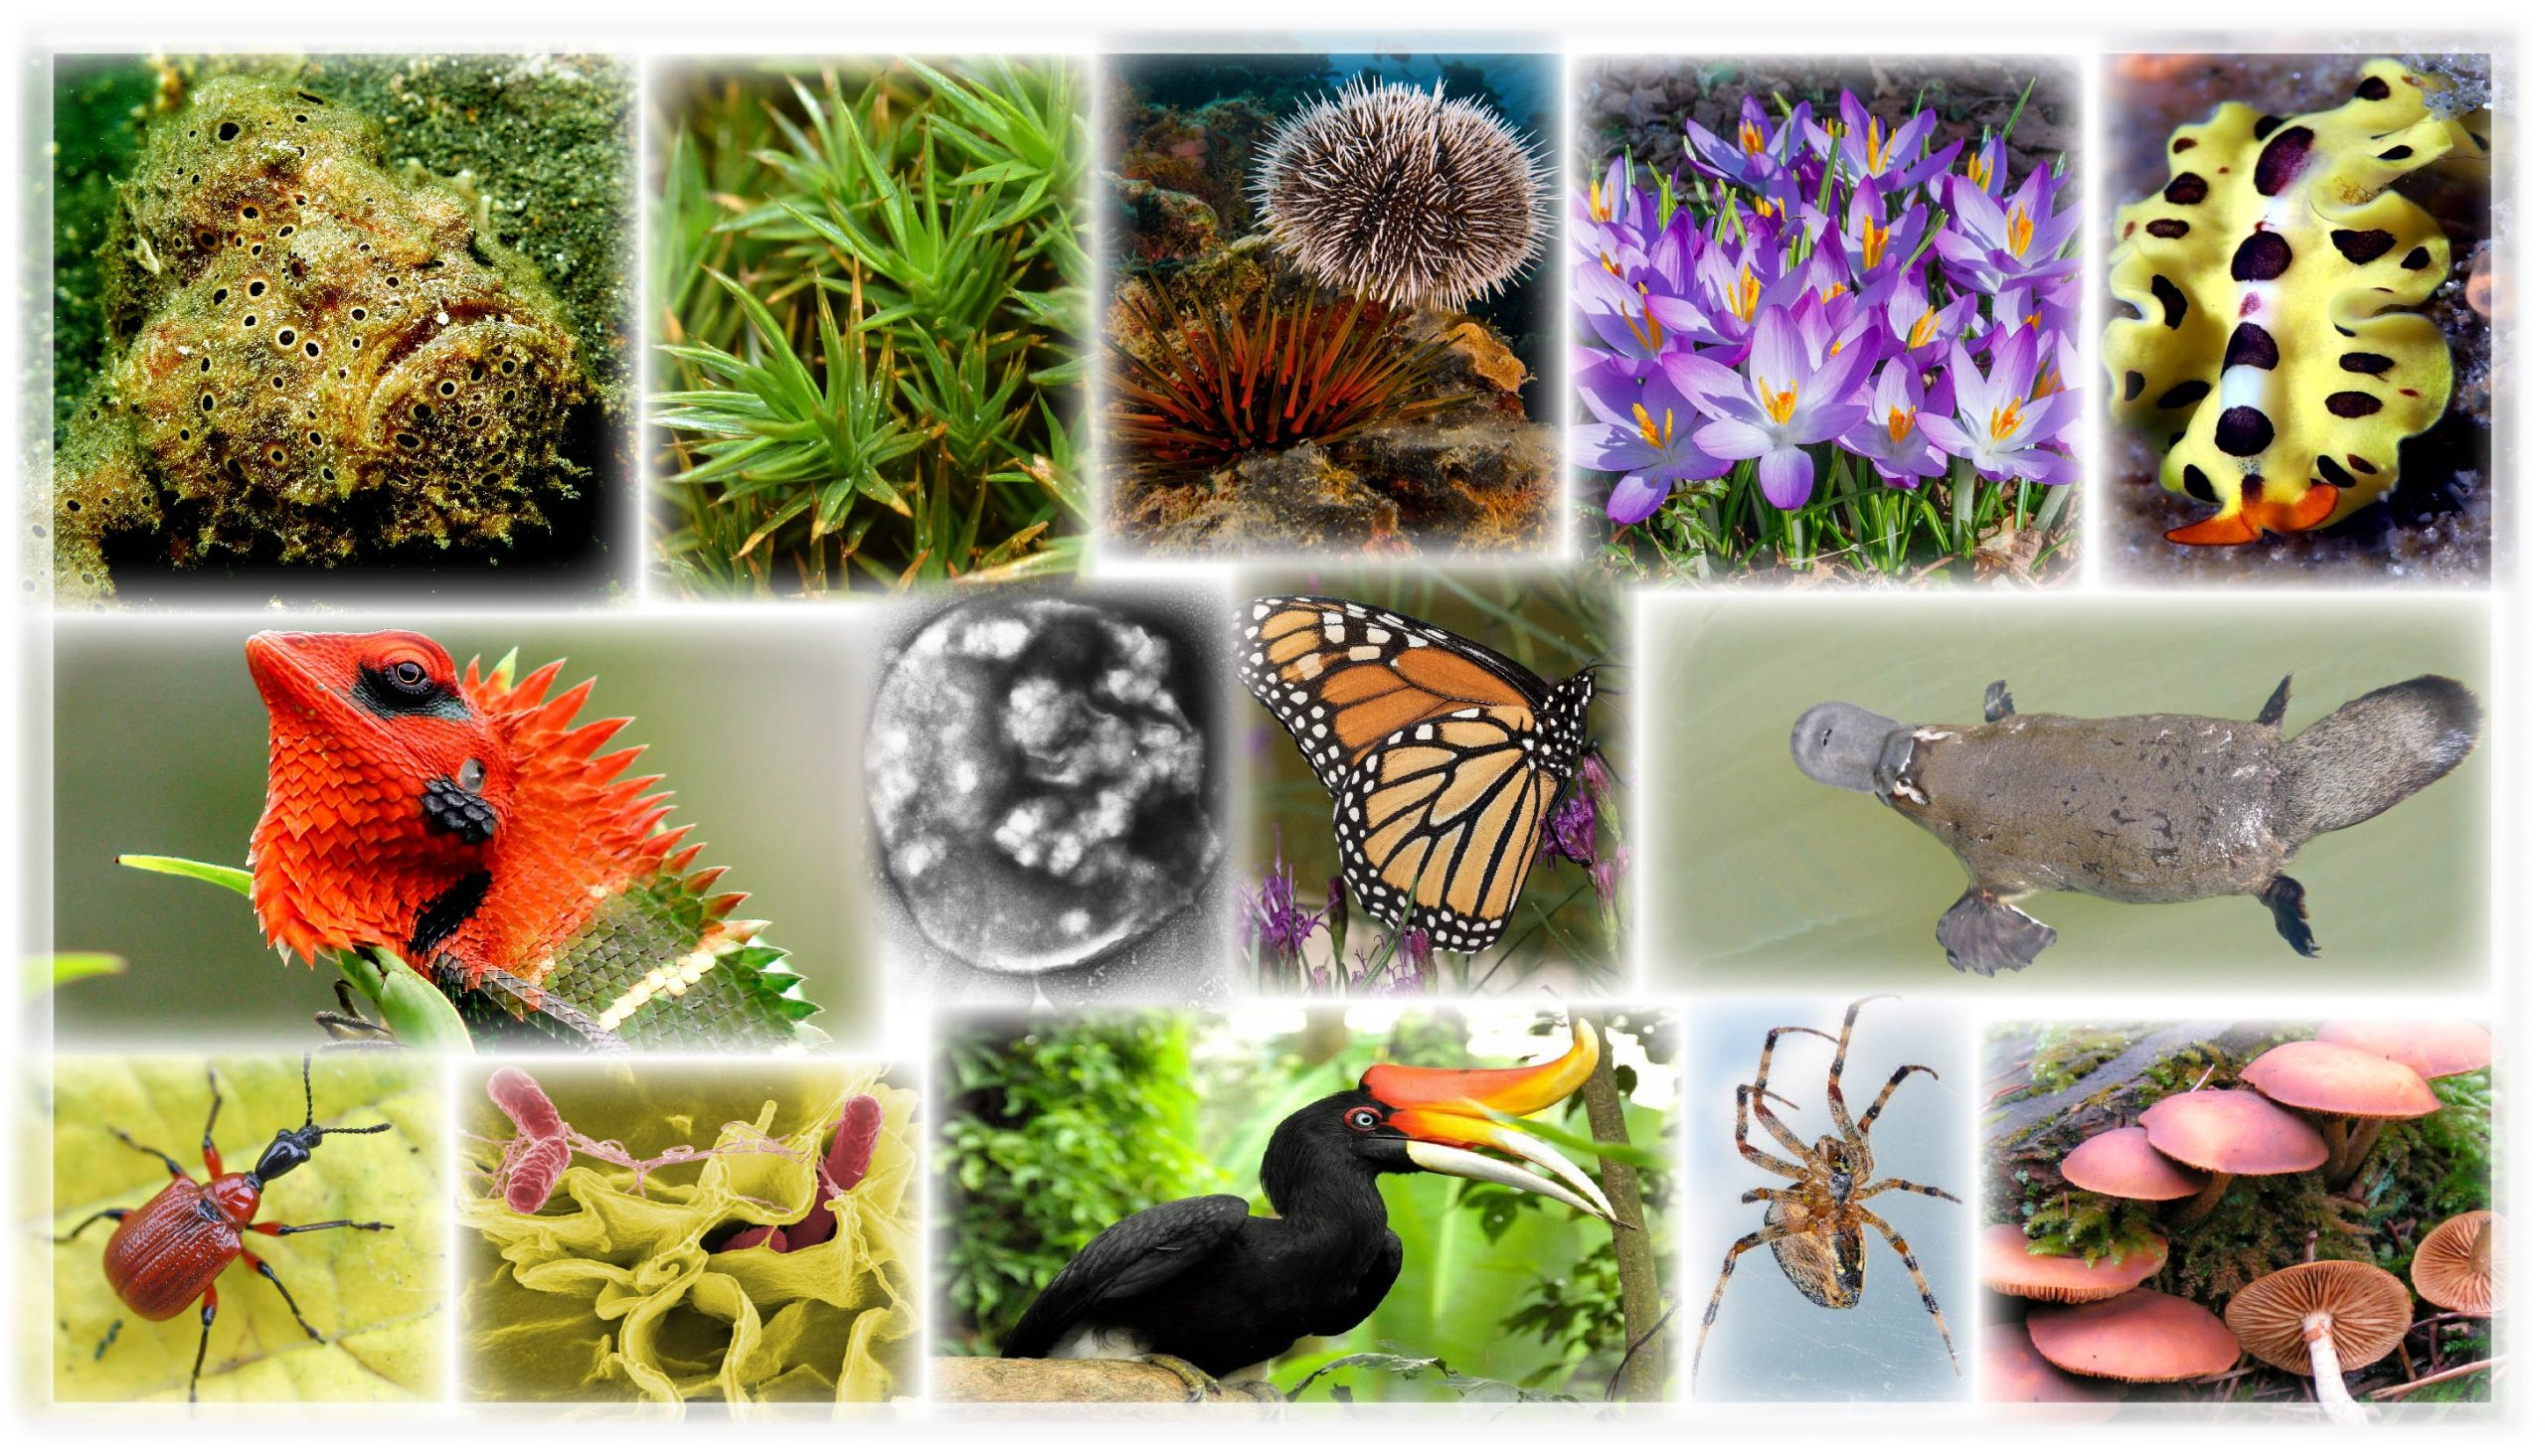 Camoflaged fish, close-up of green moss, brown sea urchins, white and purple flowers, yellow marine flatworm with black dots, iguana with a red head and green body, a single cell, a orange, black, and white butterfly, a brown platypus, a red beetle with a black head, single red bactia cells on a green substrate, a black bird with a hooked orange ornament on the beak, a brown spider on a web, mushrooms growing from the ground.